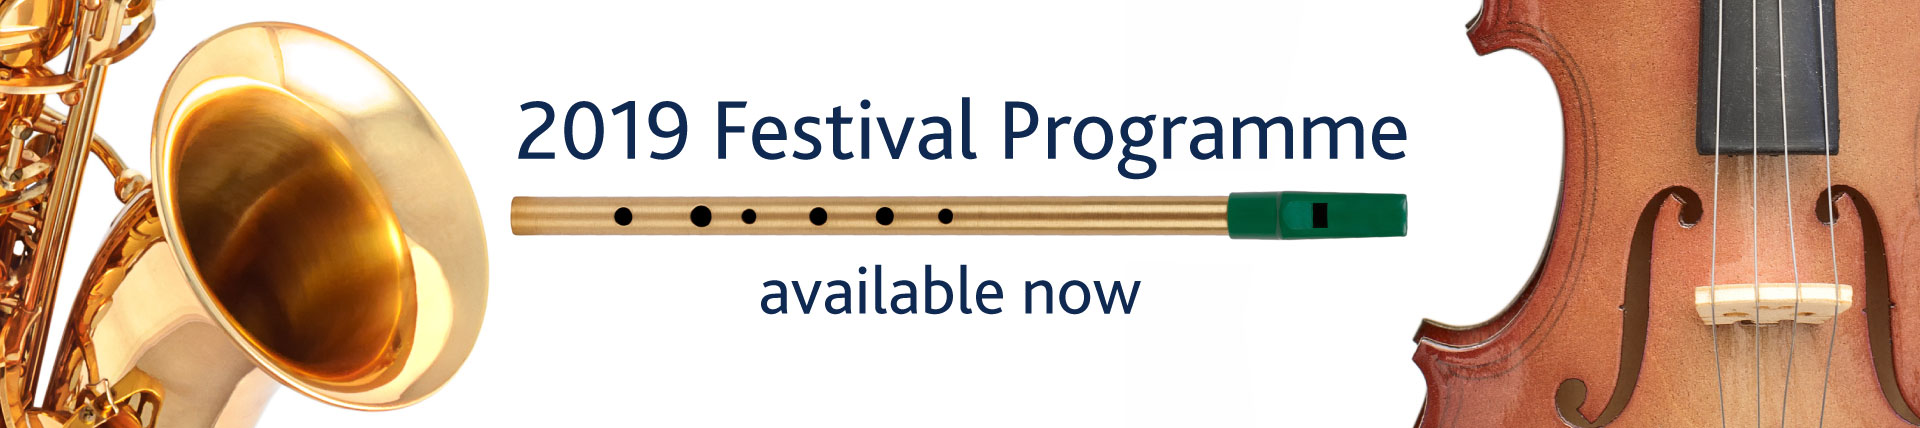 2019 Festival Programme Available Now